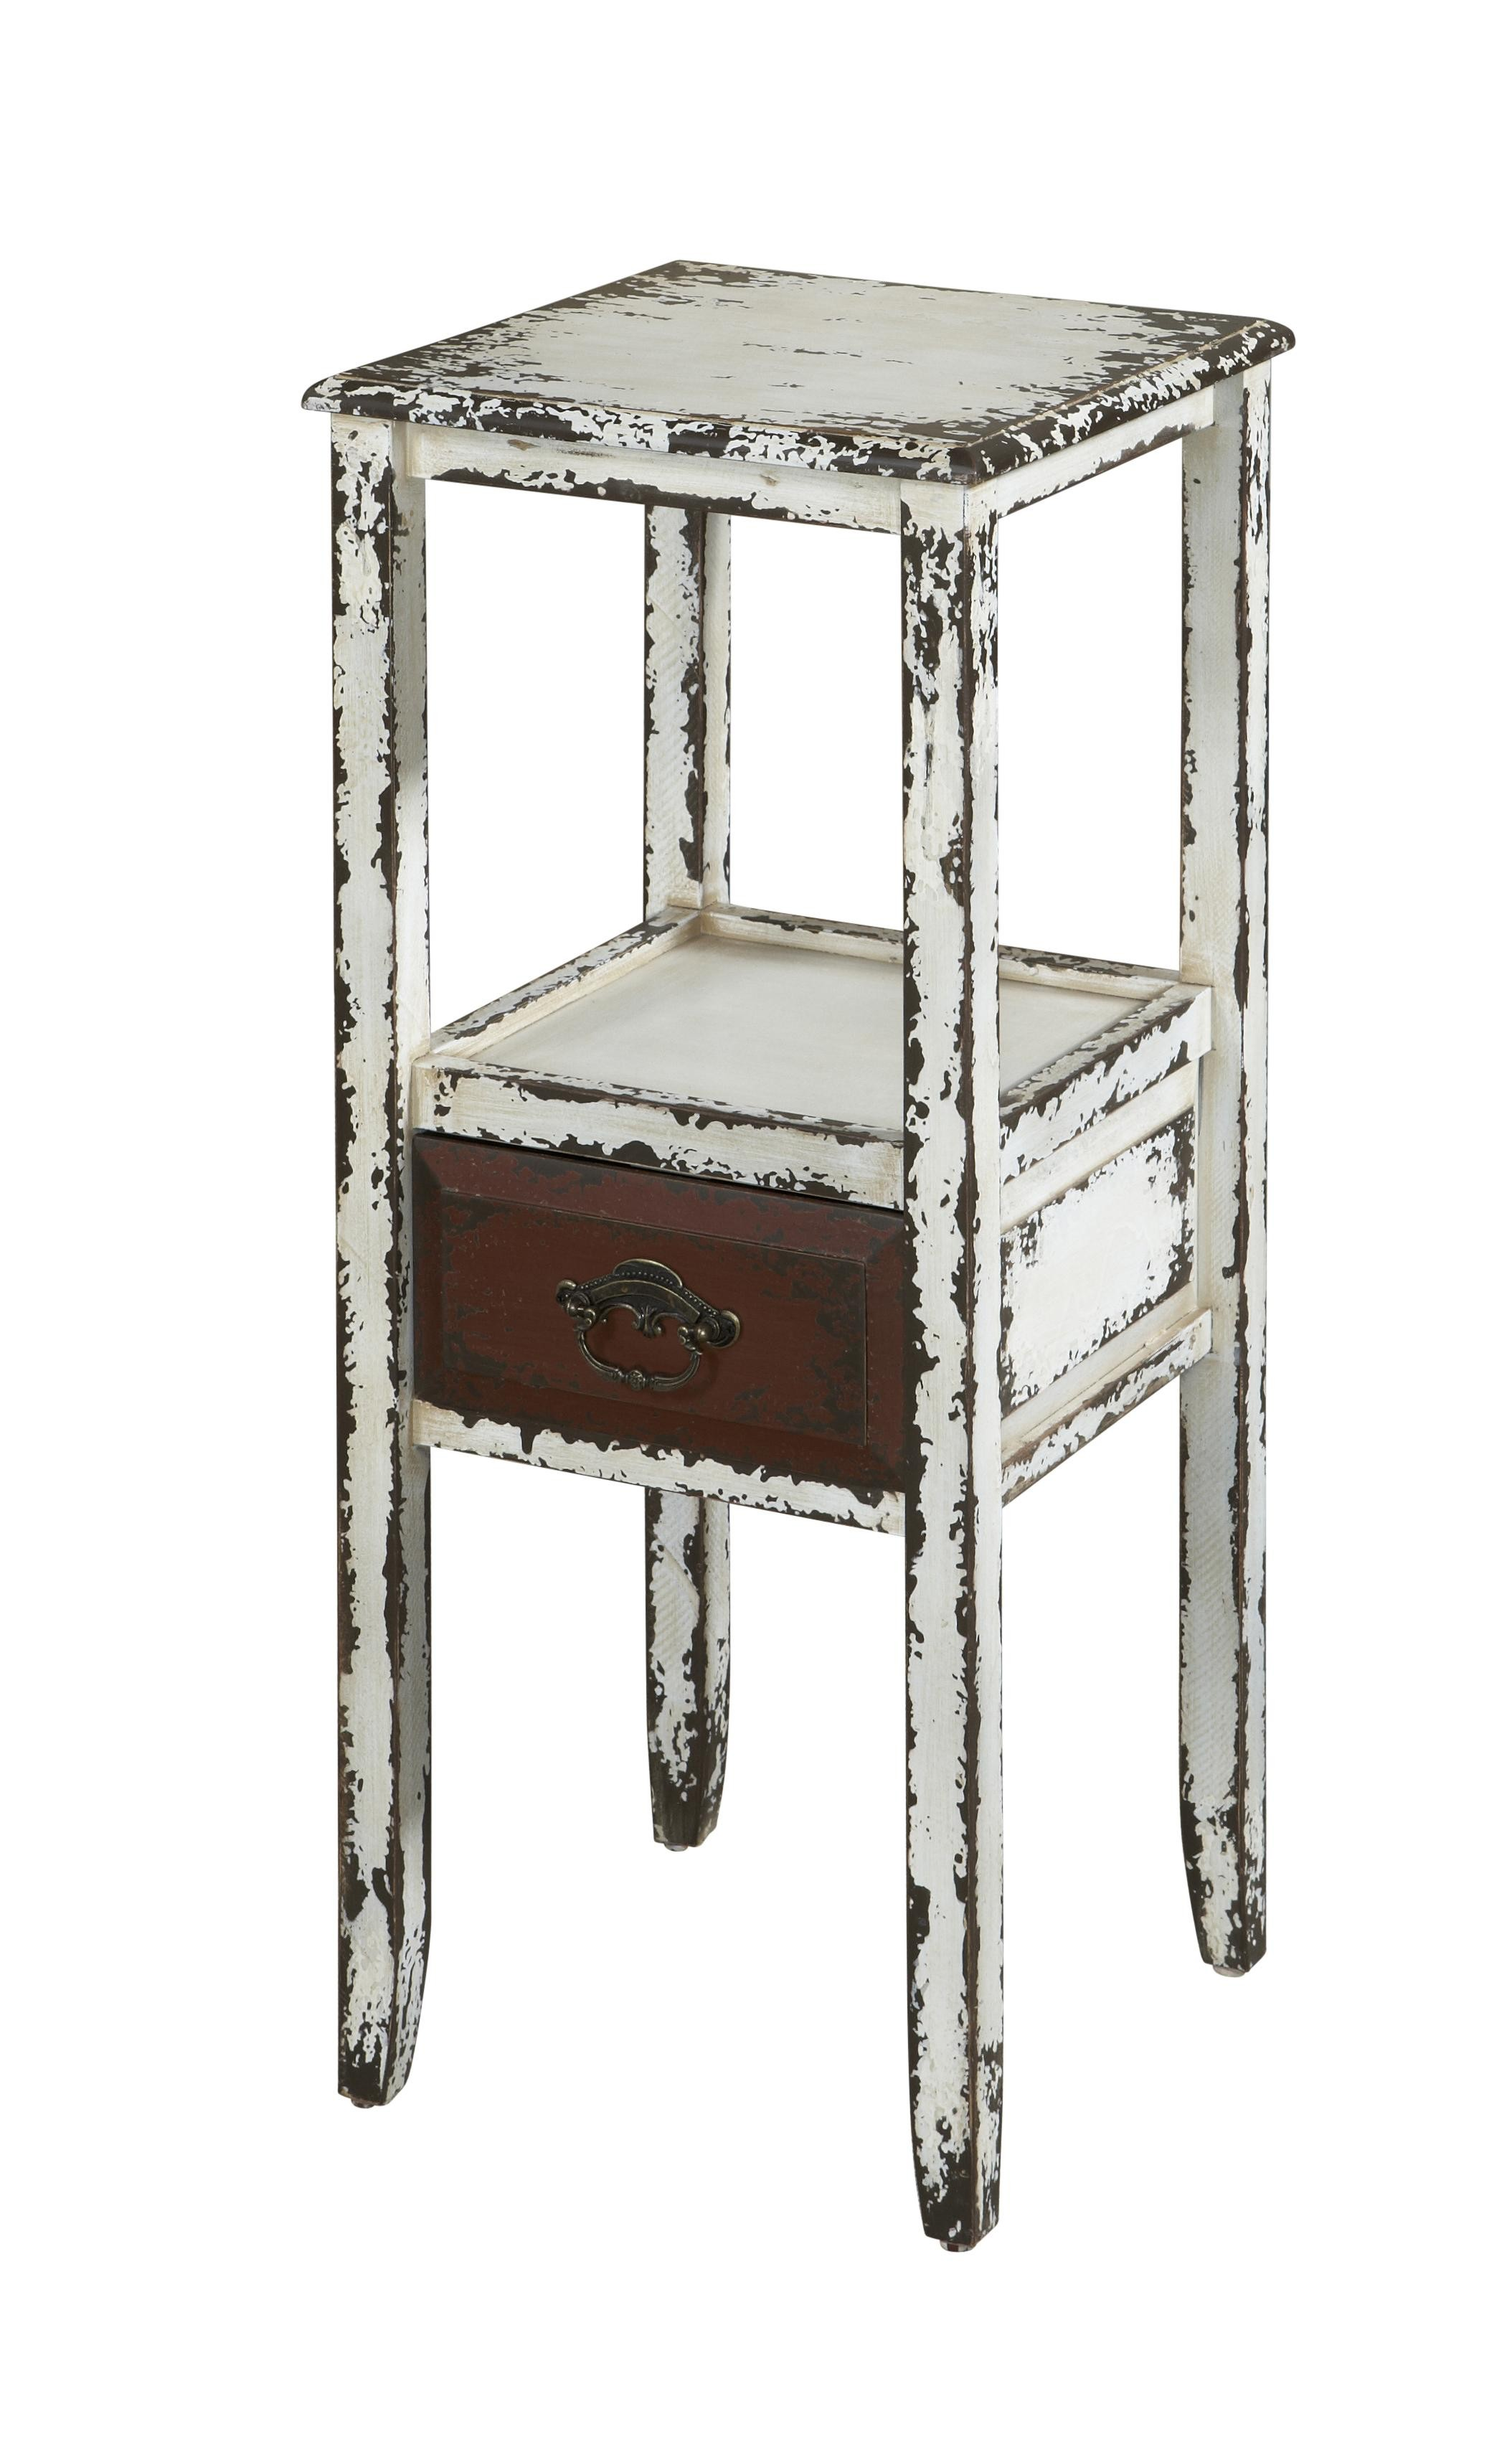 antique white end tables powell parcel drum accent table gold night stands floor threshold transitions metal wood and side hairpin legs fred meyer furniture marble tiered glass